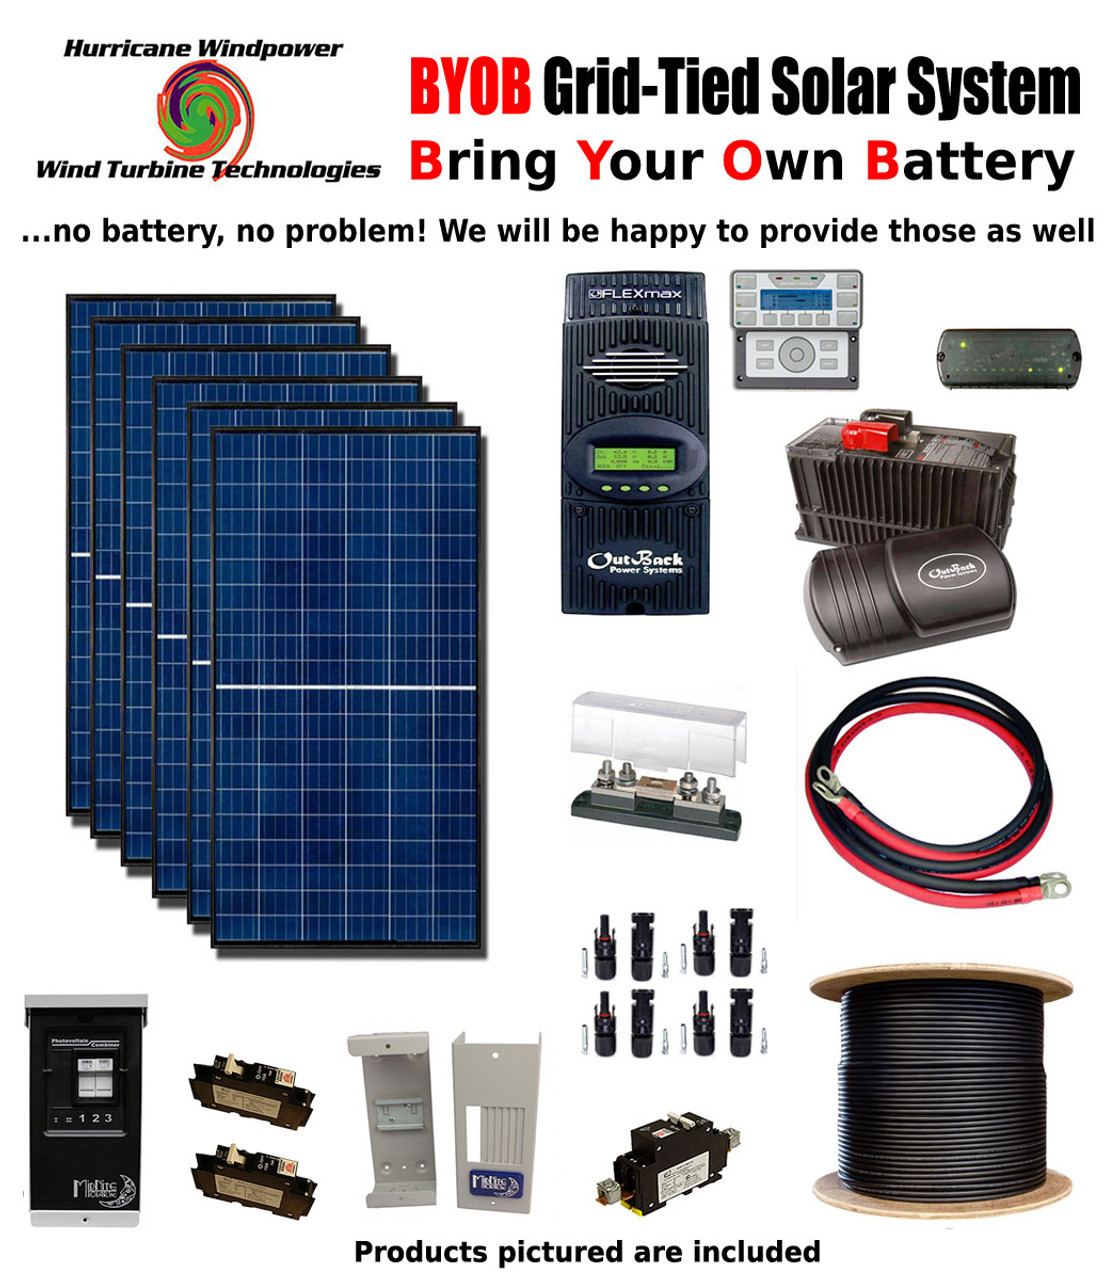 byob grid tied 1 7kw 24v solar panel kit tiny house cabin pv system outback fm80 Air Bag Kit